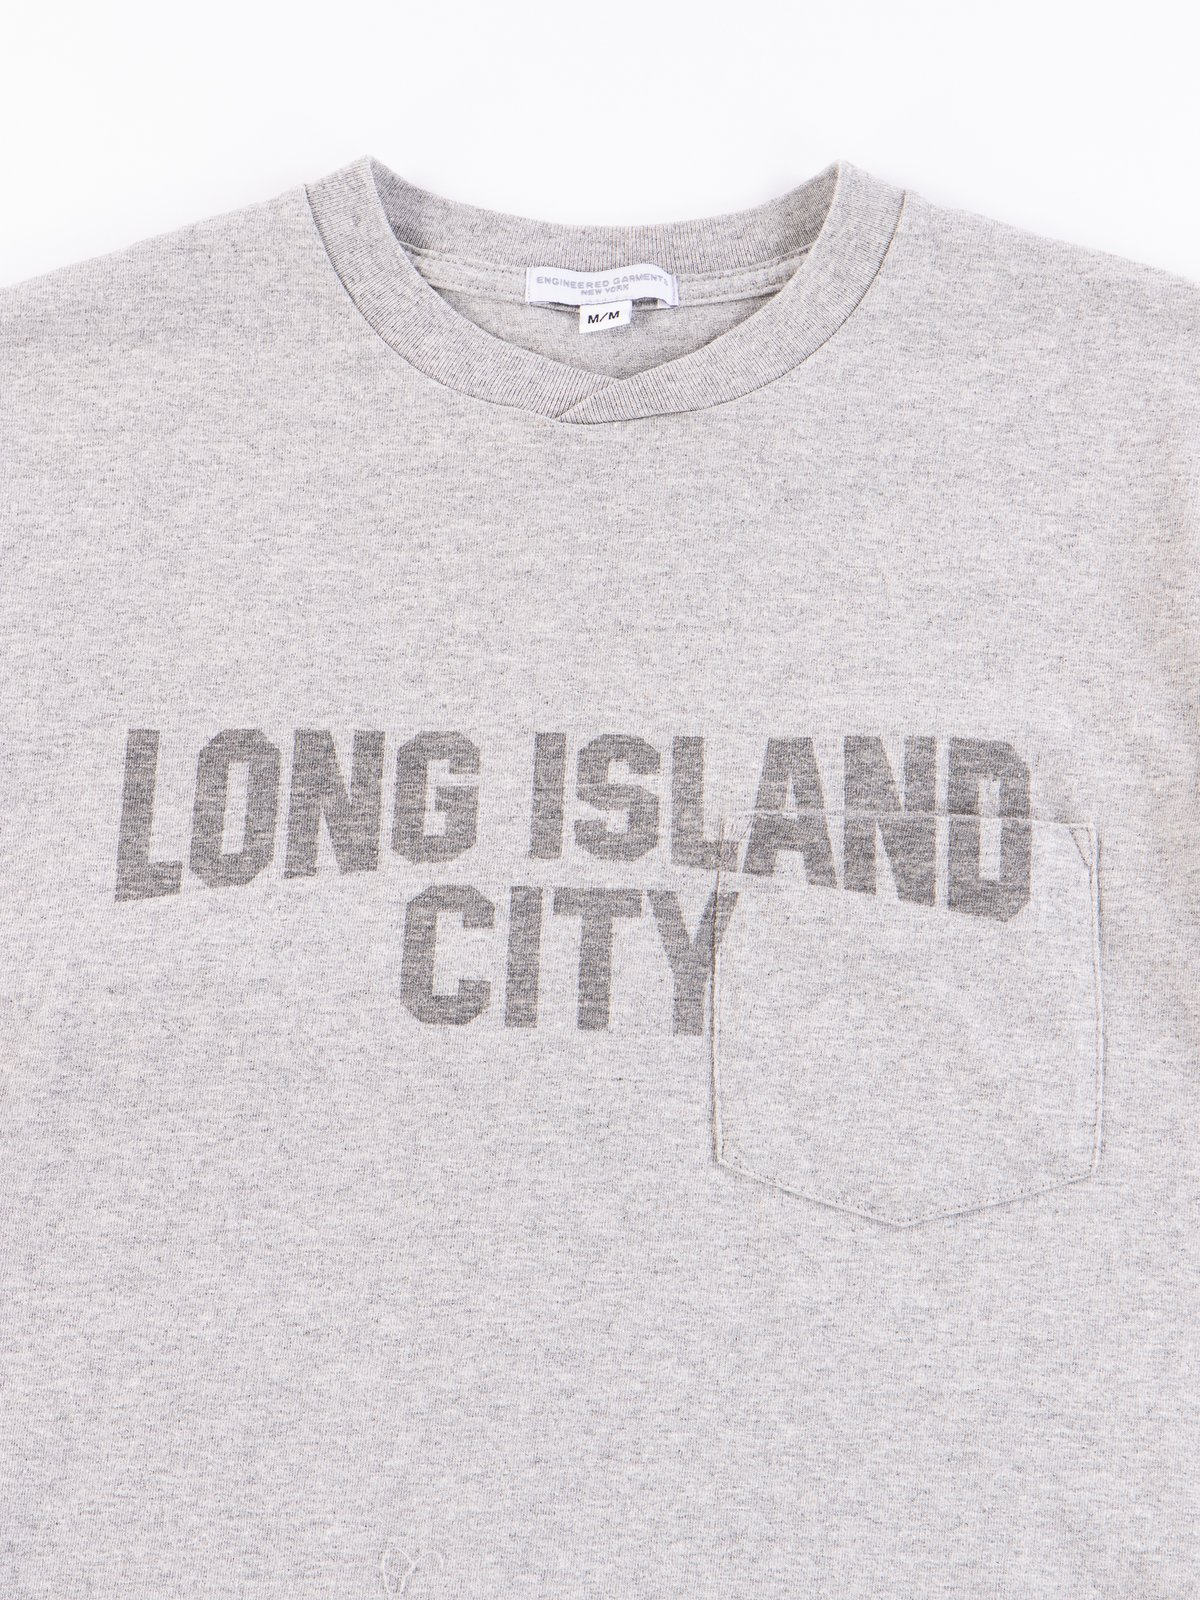 Grey Long Island City Printed T–Shirt - Image 3